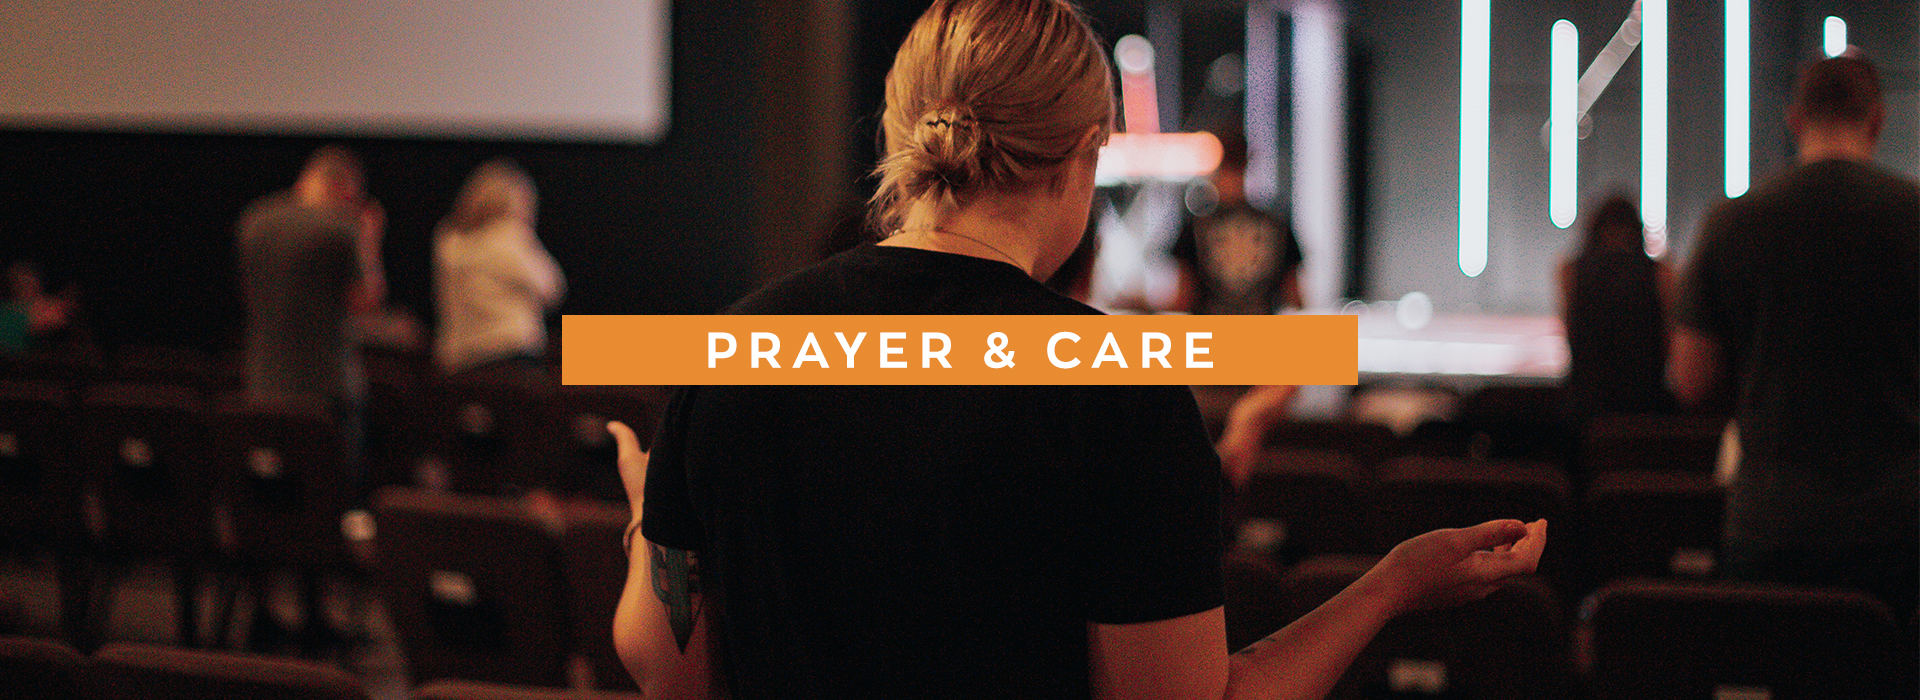 Prayer and Care Banner